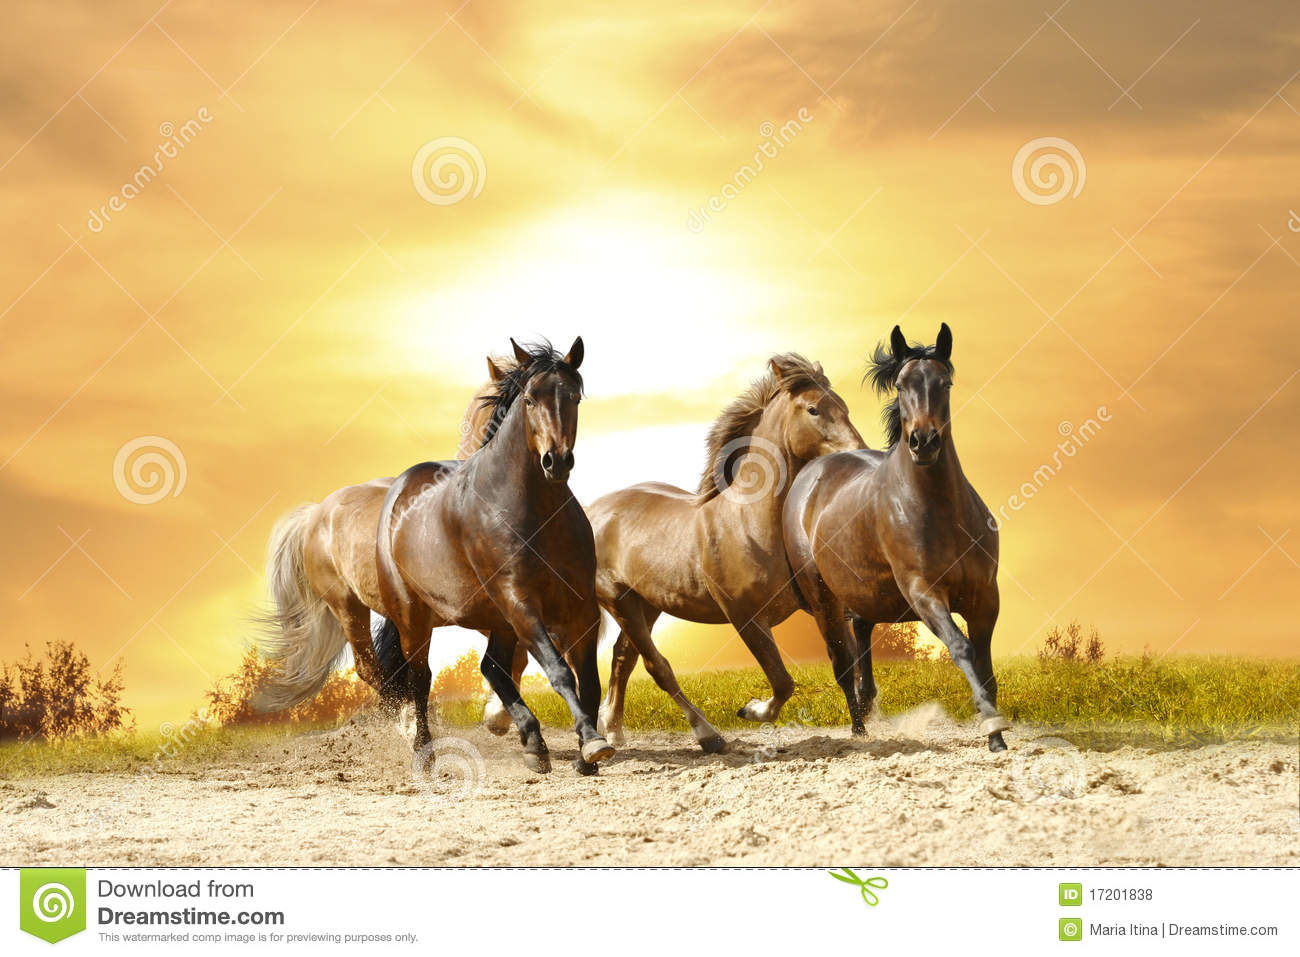 Horses Run Royalty Free Stock Photos - Image: 17201838